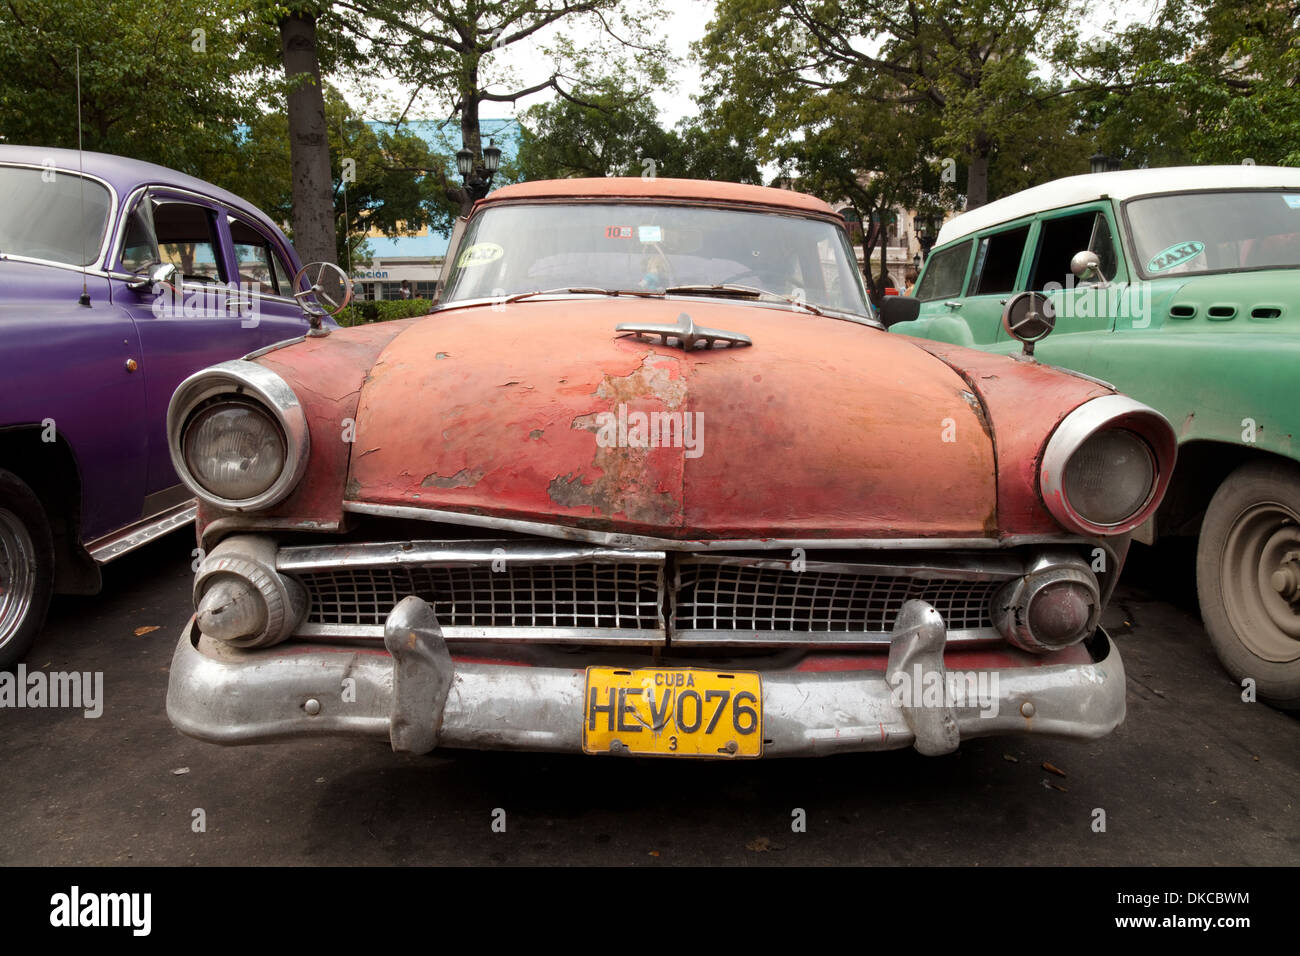 Old american cars from the 1950s still being used as taxis on the ...